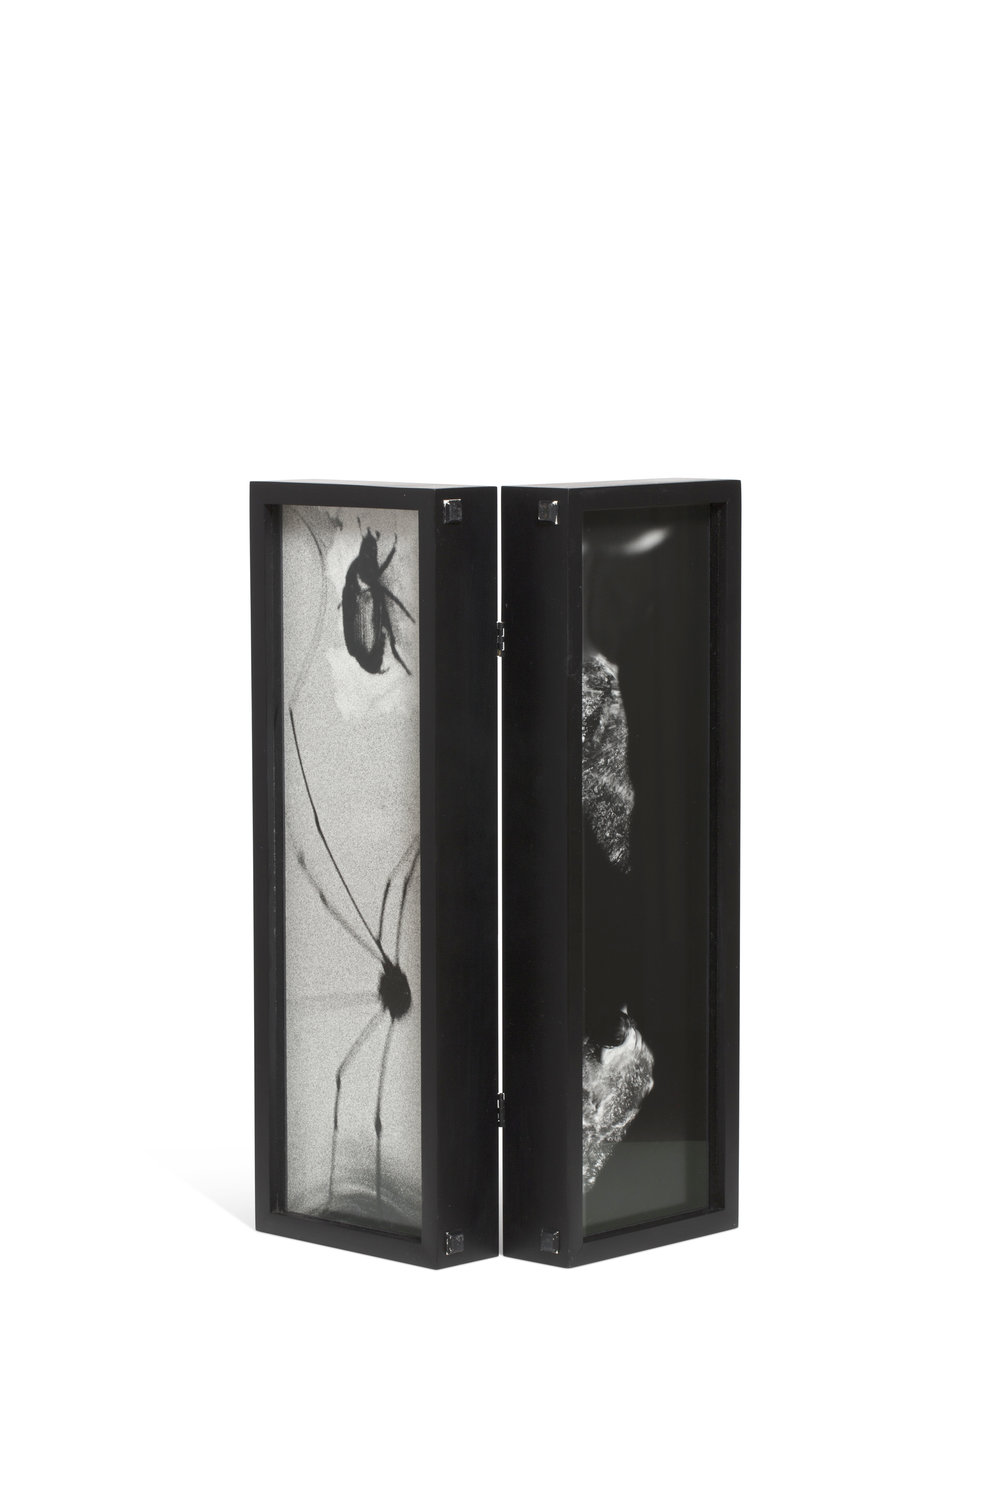 Hope Sandrow   Box: Spider Beetle  1989 Gelatine silver print mounted on cardboard, diptych in two joined boxes, edition 1/3 Each: 13,2 x 42,3 cm (Box measures: 15,5 x 44,2 x 10 cm)